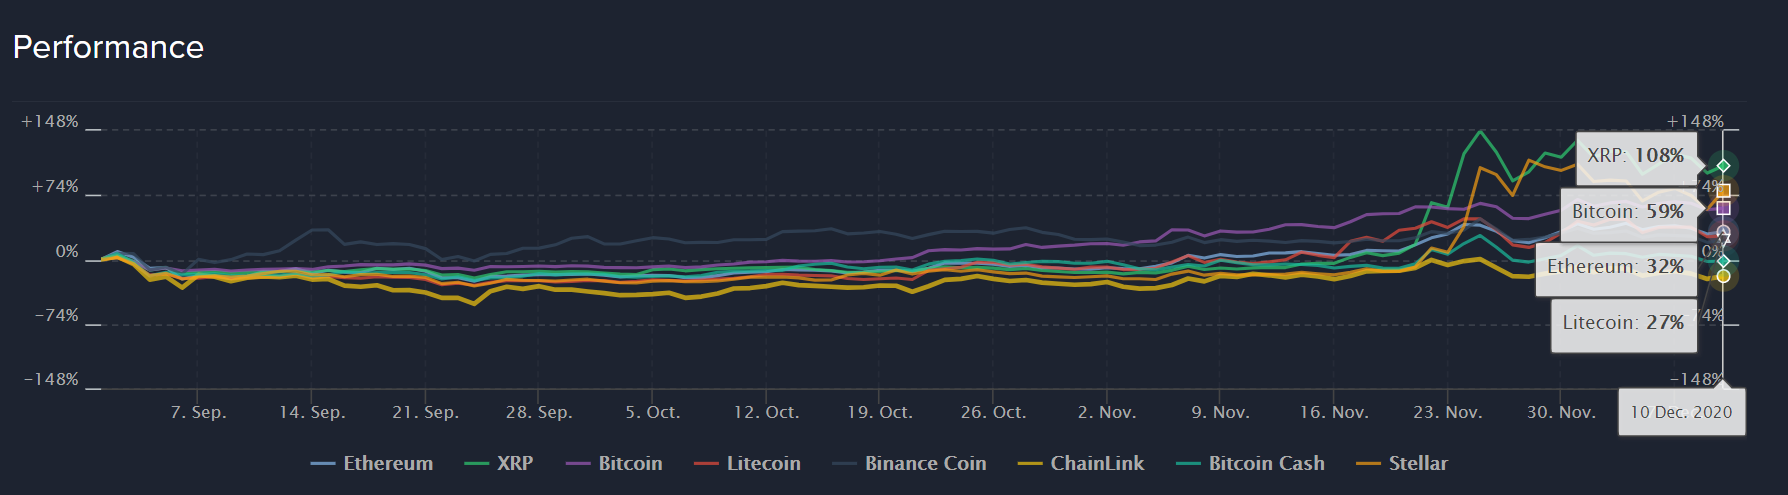 Performance of XRP against other cryptocurrencies before the snapshot